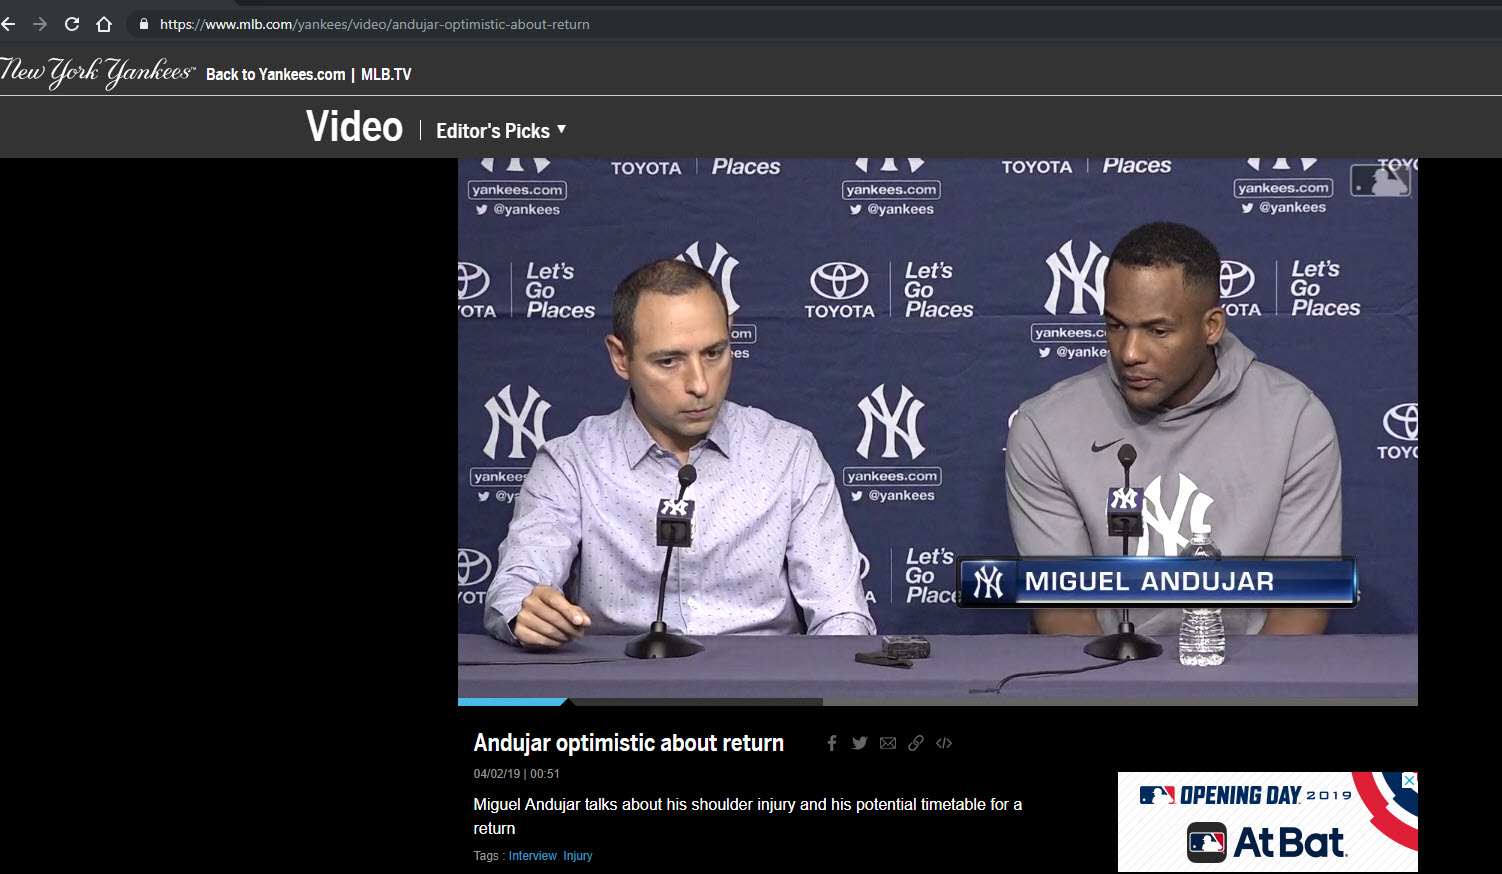 Google Posts Yankees Video